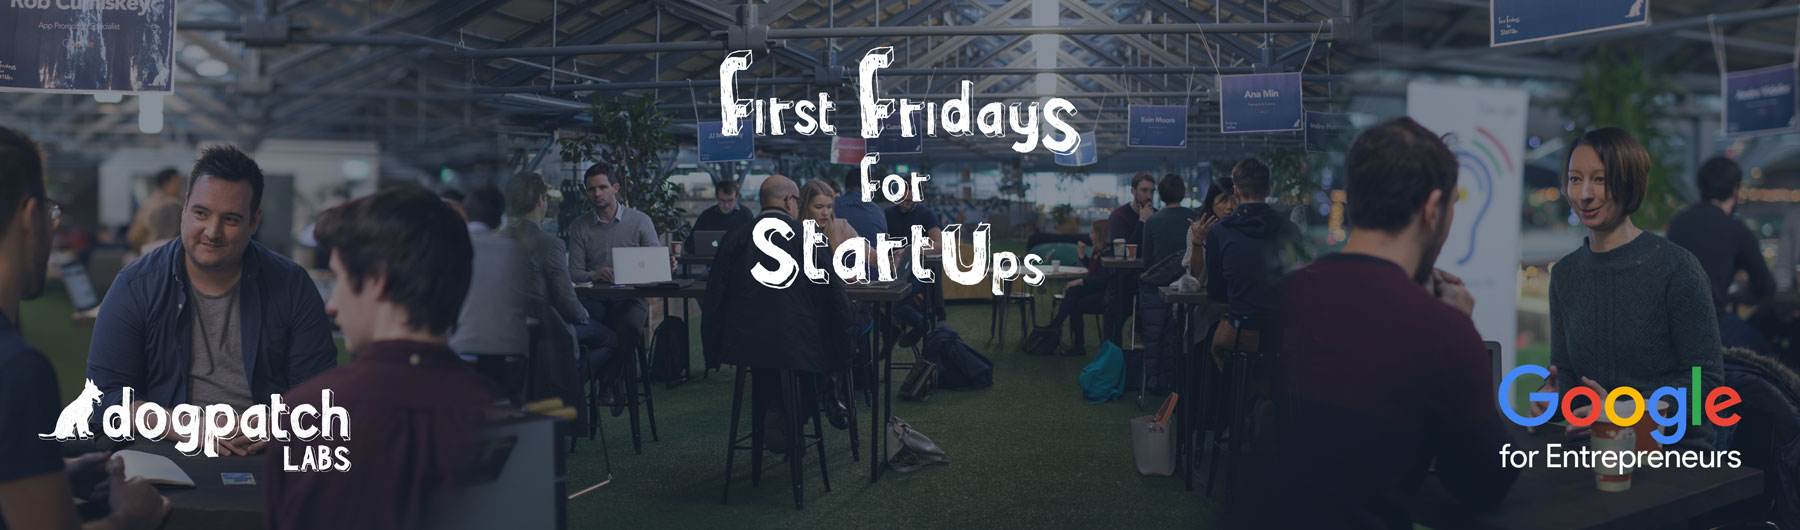 First Fridays for Startups - Lightning Talks - 7th April 2017